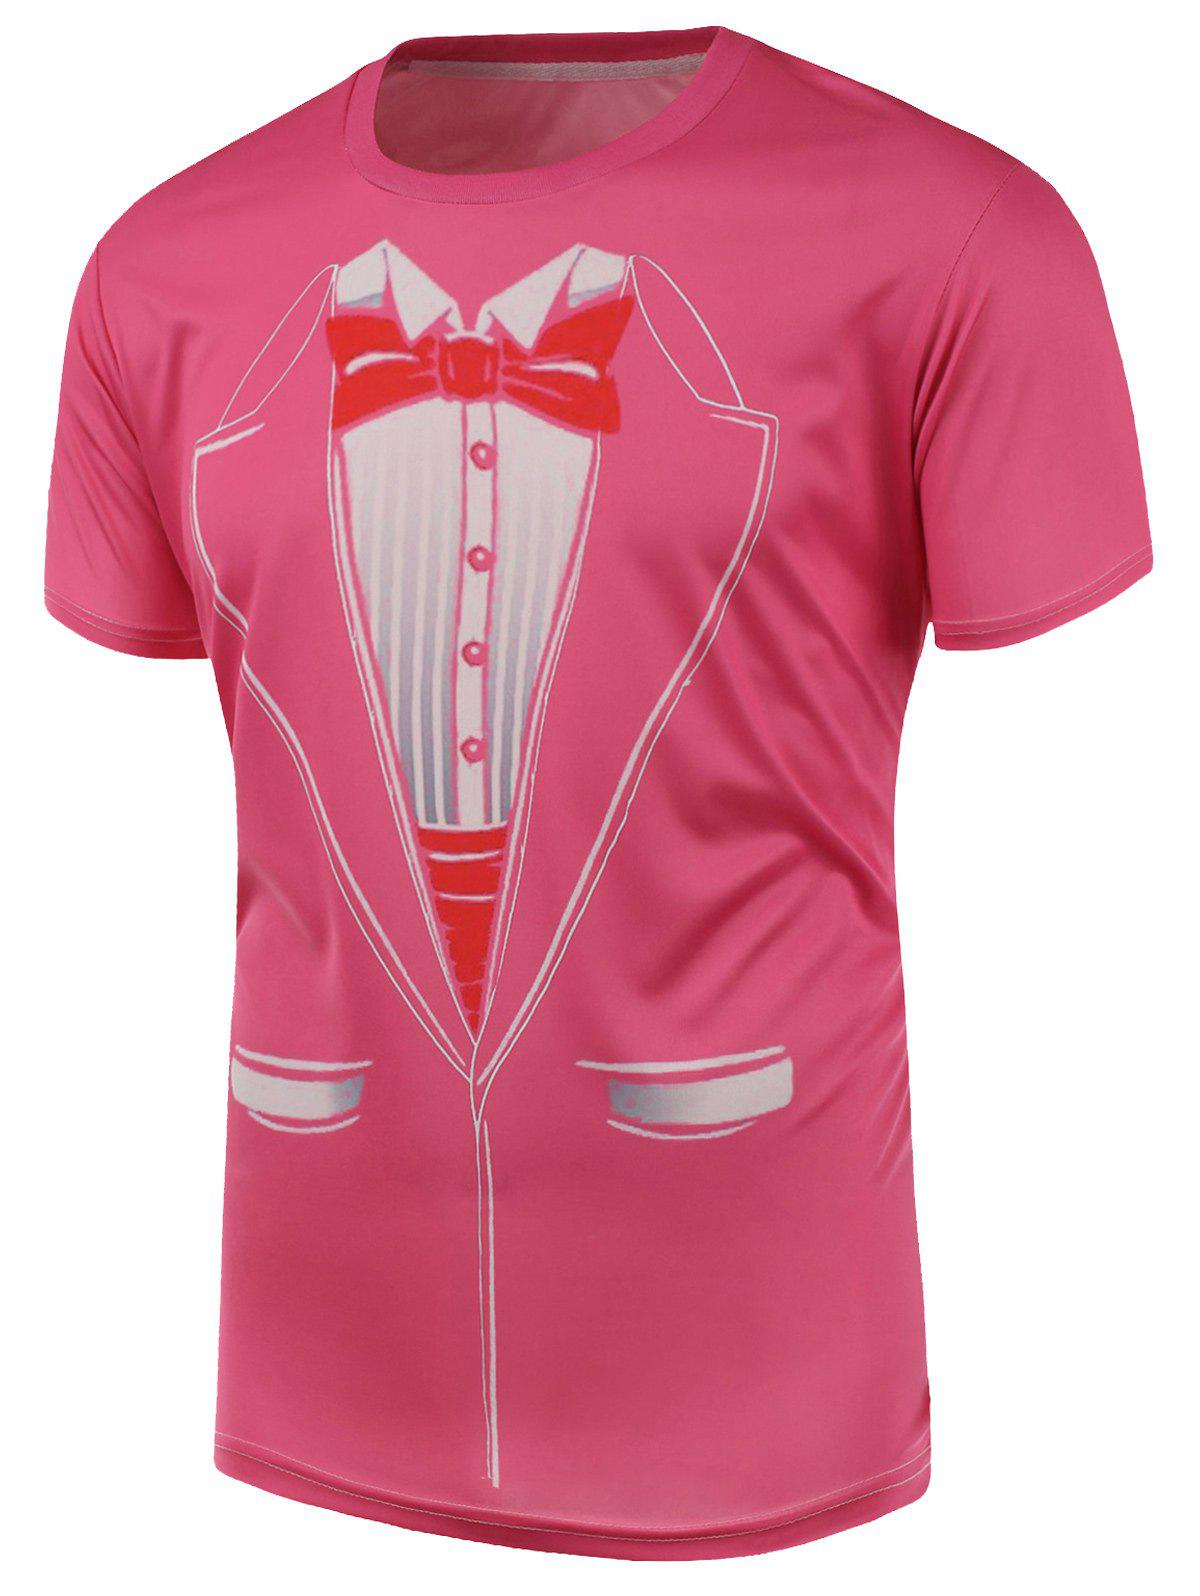 Short Sleeve Bow Tie and Suit Print T-Shirt - PINK L